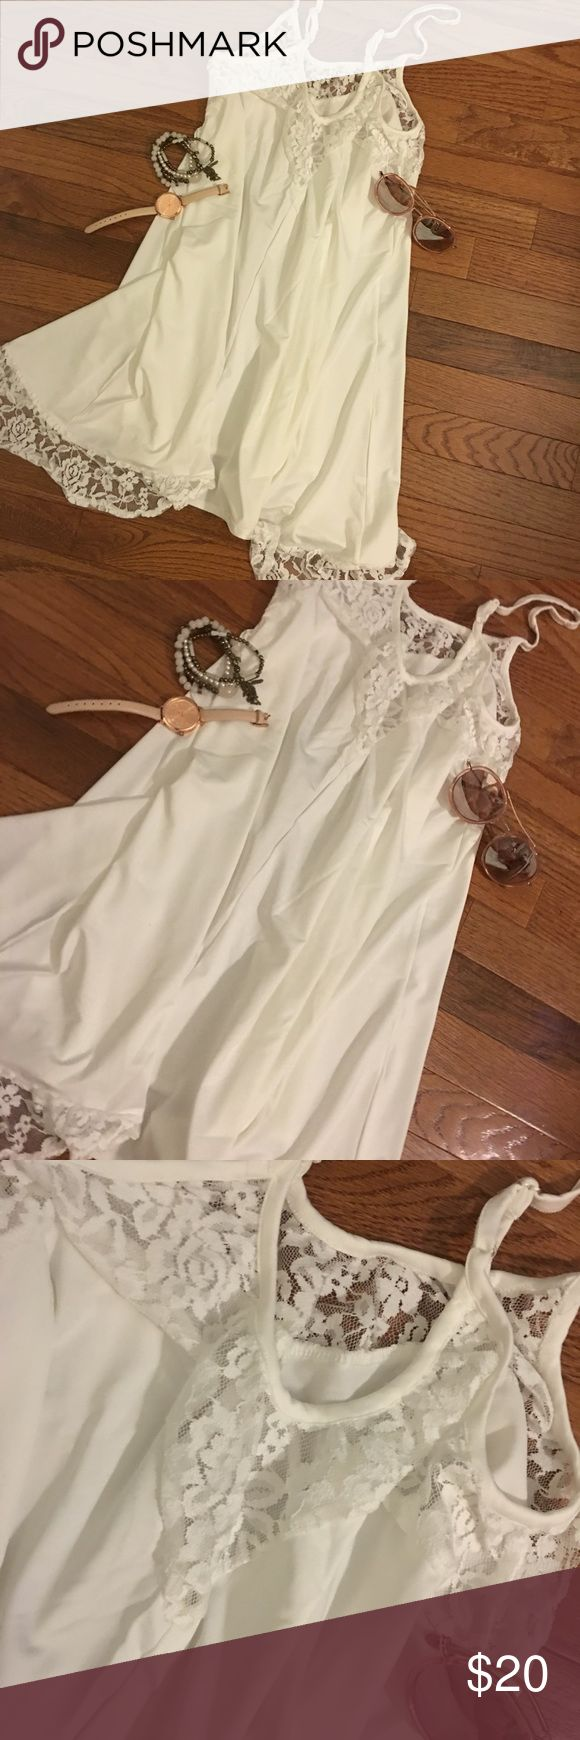 White Lace Cami/Slip: 1 Small 2 Medium LEFT! NWT! I have 2 Medium, 1 Small...wear under kimono or cute little jacket. Pair with skinny jeans, heels, etc... $20 each!  ** jewelry not for sale**. Tops Camisoles